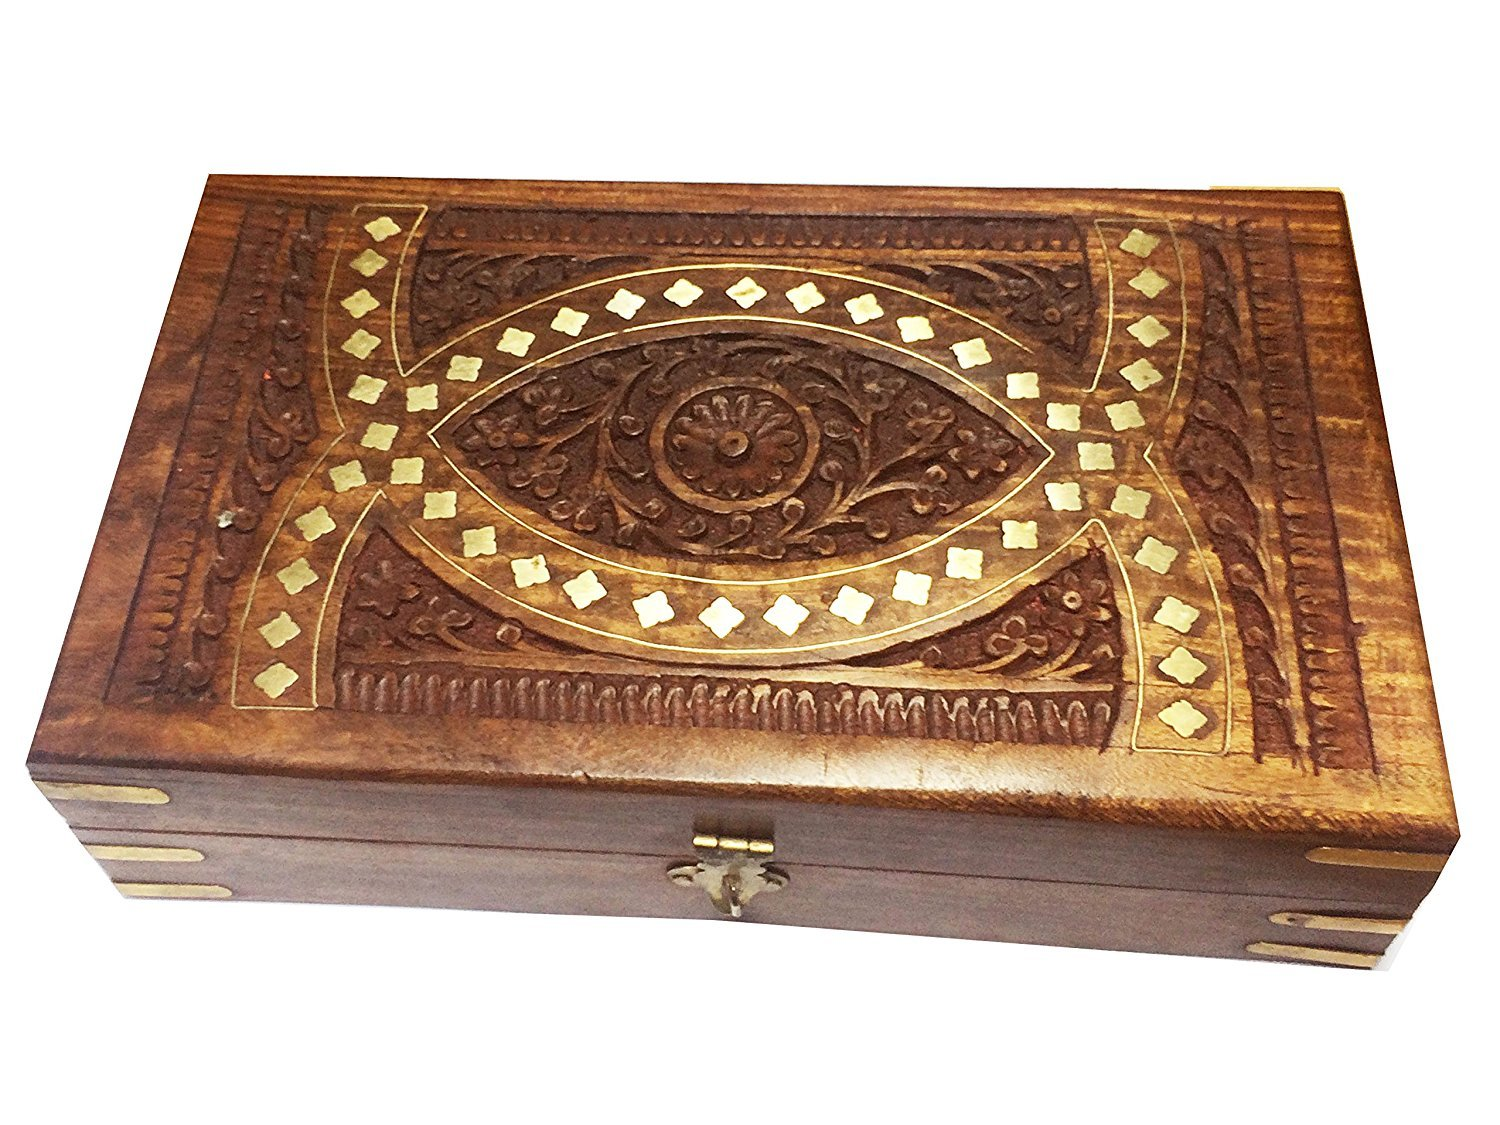 Khandekar (with device of K) Wooden Oval Carving Inlay jewelry box, Storage Box, Vintage Box, Brown Color Keepsake Box 10x6inch, Easter Day/Mother Day/Good Friday Gift